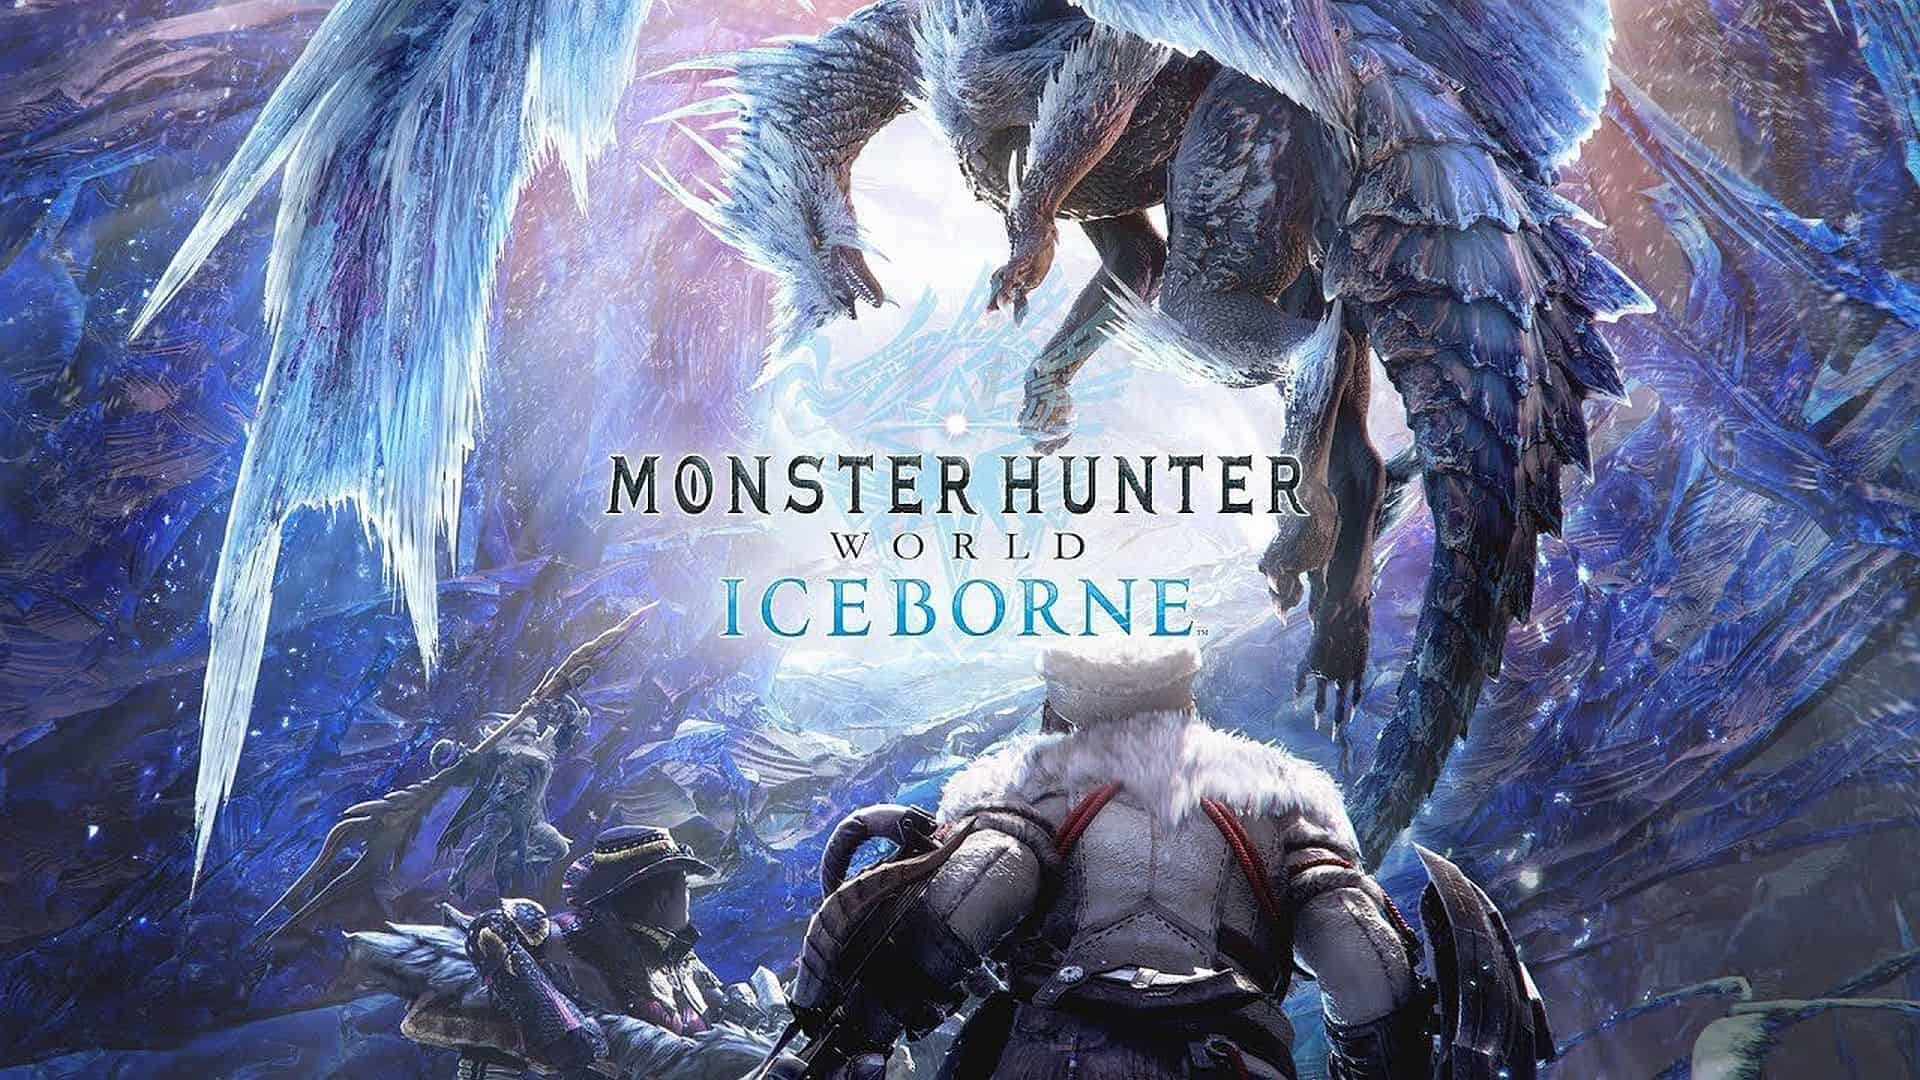 Upcoming Monster Hunter World: Iceborne Beta For PlayStation 4 And Xbox One Offers Four Quests, Including The Elder Dragon Velkhana